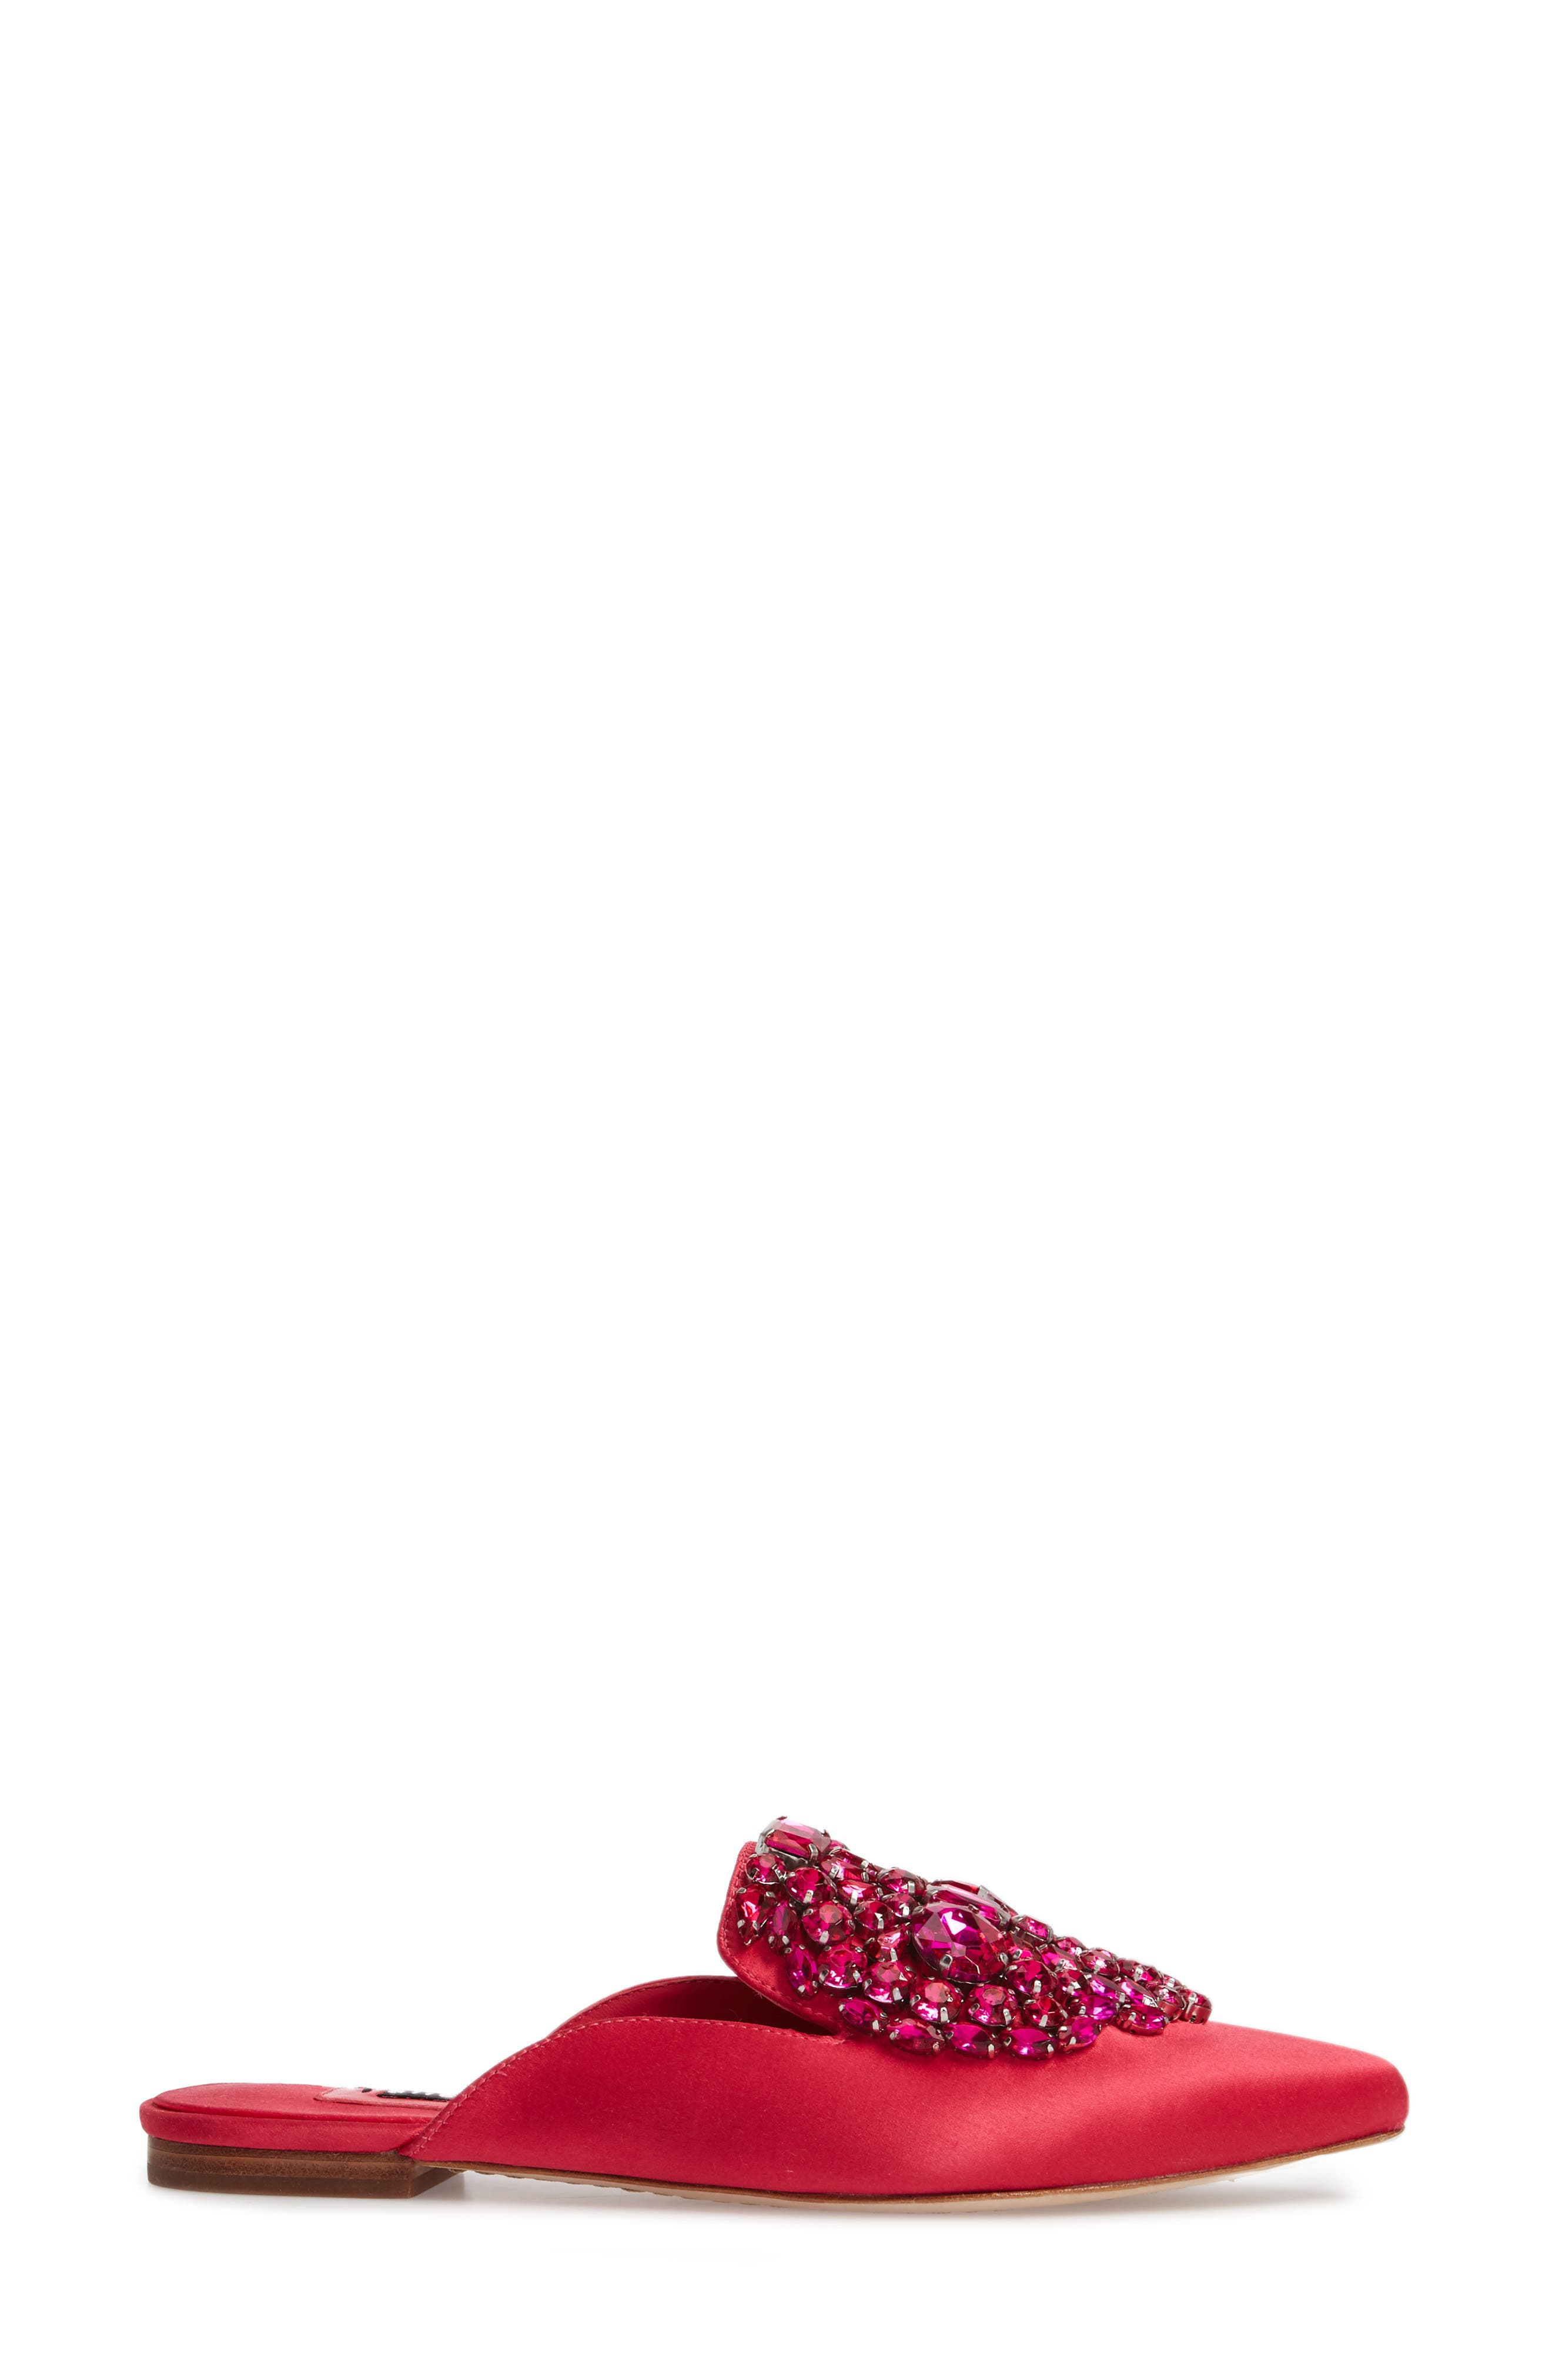 Lilly Crystal Embellished Loafer Mule,                             Alternate thumbnail 3, color,                             650